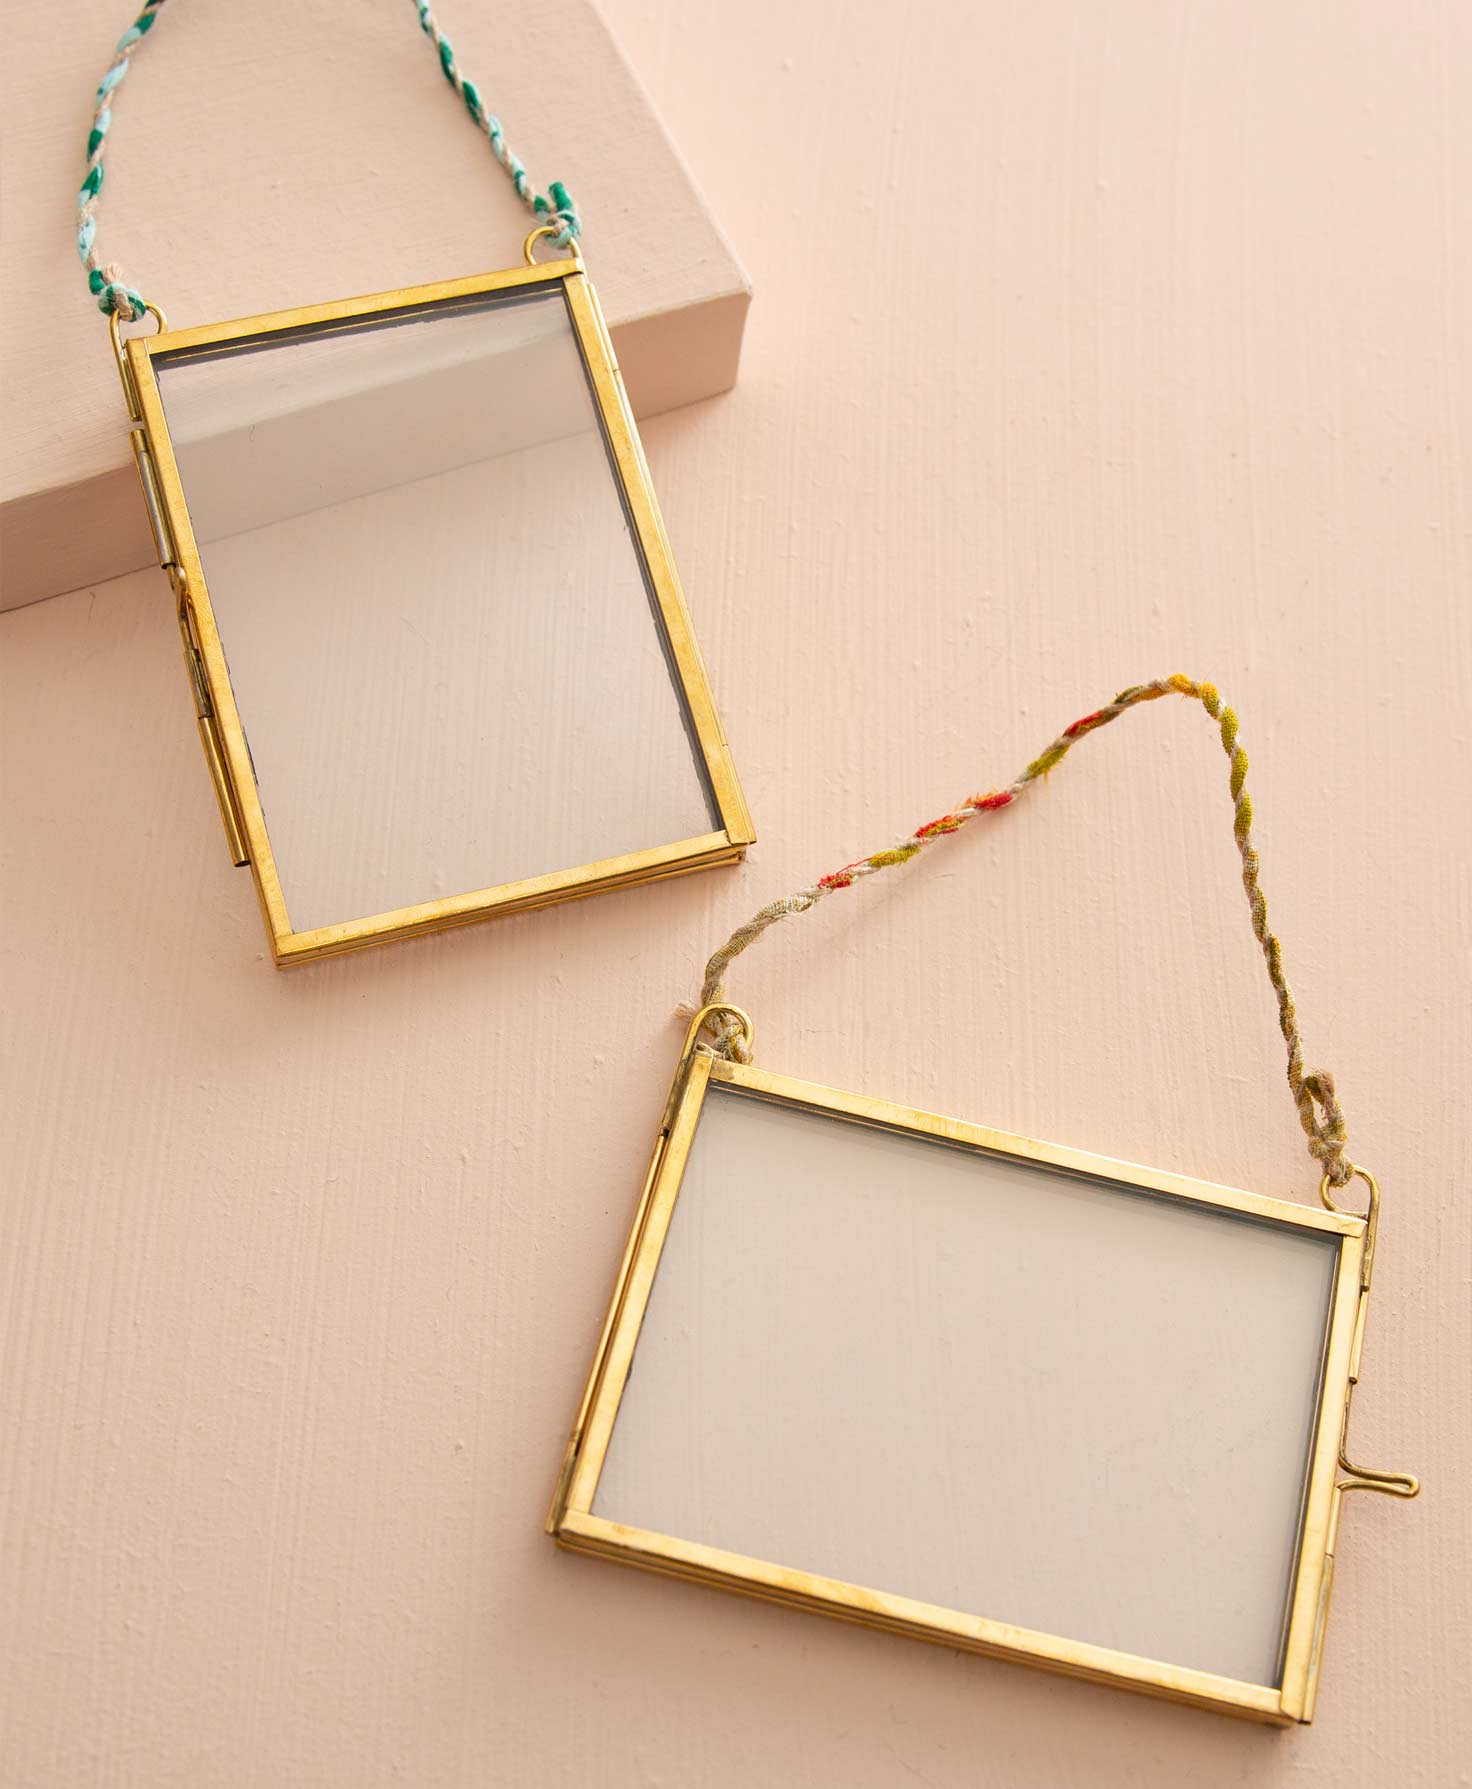 The two frames included in the Memento Frame Ornaments set lay on a peach background. Each of the glass frames is outlined in shining brass. Both frames are rectangular, but one is oriented vertically and the other horizontally. On one edge of each frame, a mechanism enables the brass frame to open so that a photo may be placed between the glass and the frame. A twisted cord made of multicolor fabric is connected to the top corners of each frame, allowing them to be hung.